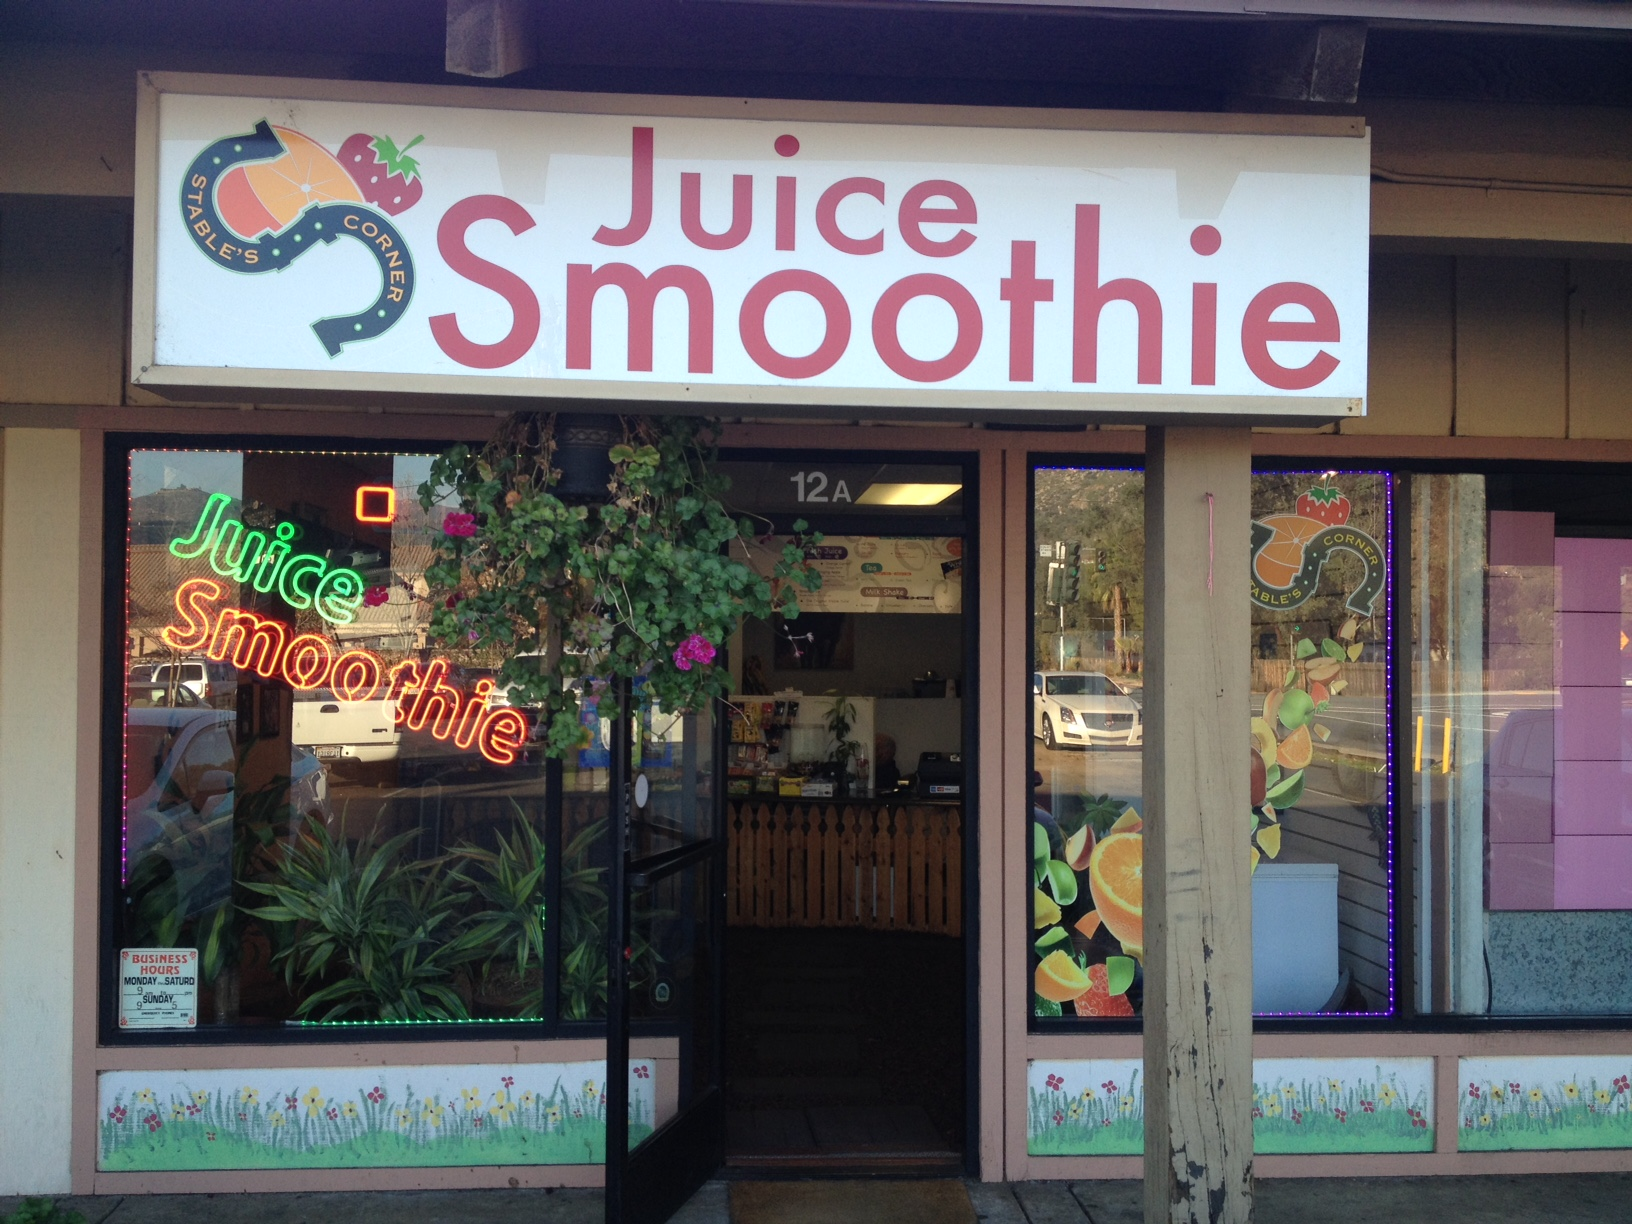 Iron Mountain Smoothie Shop